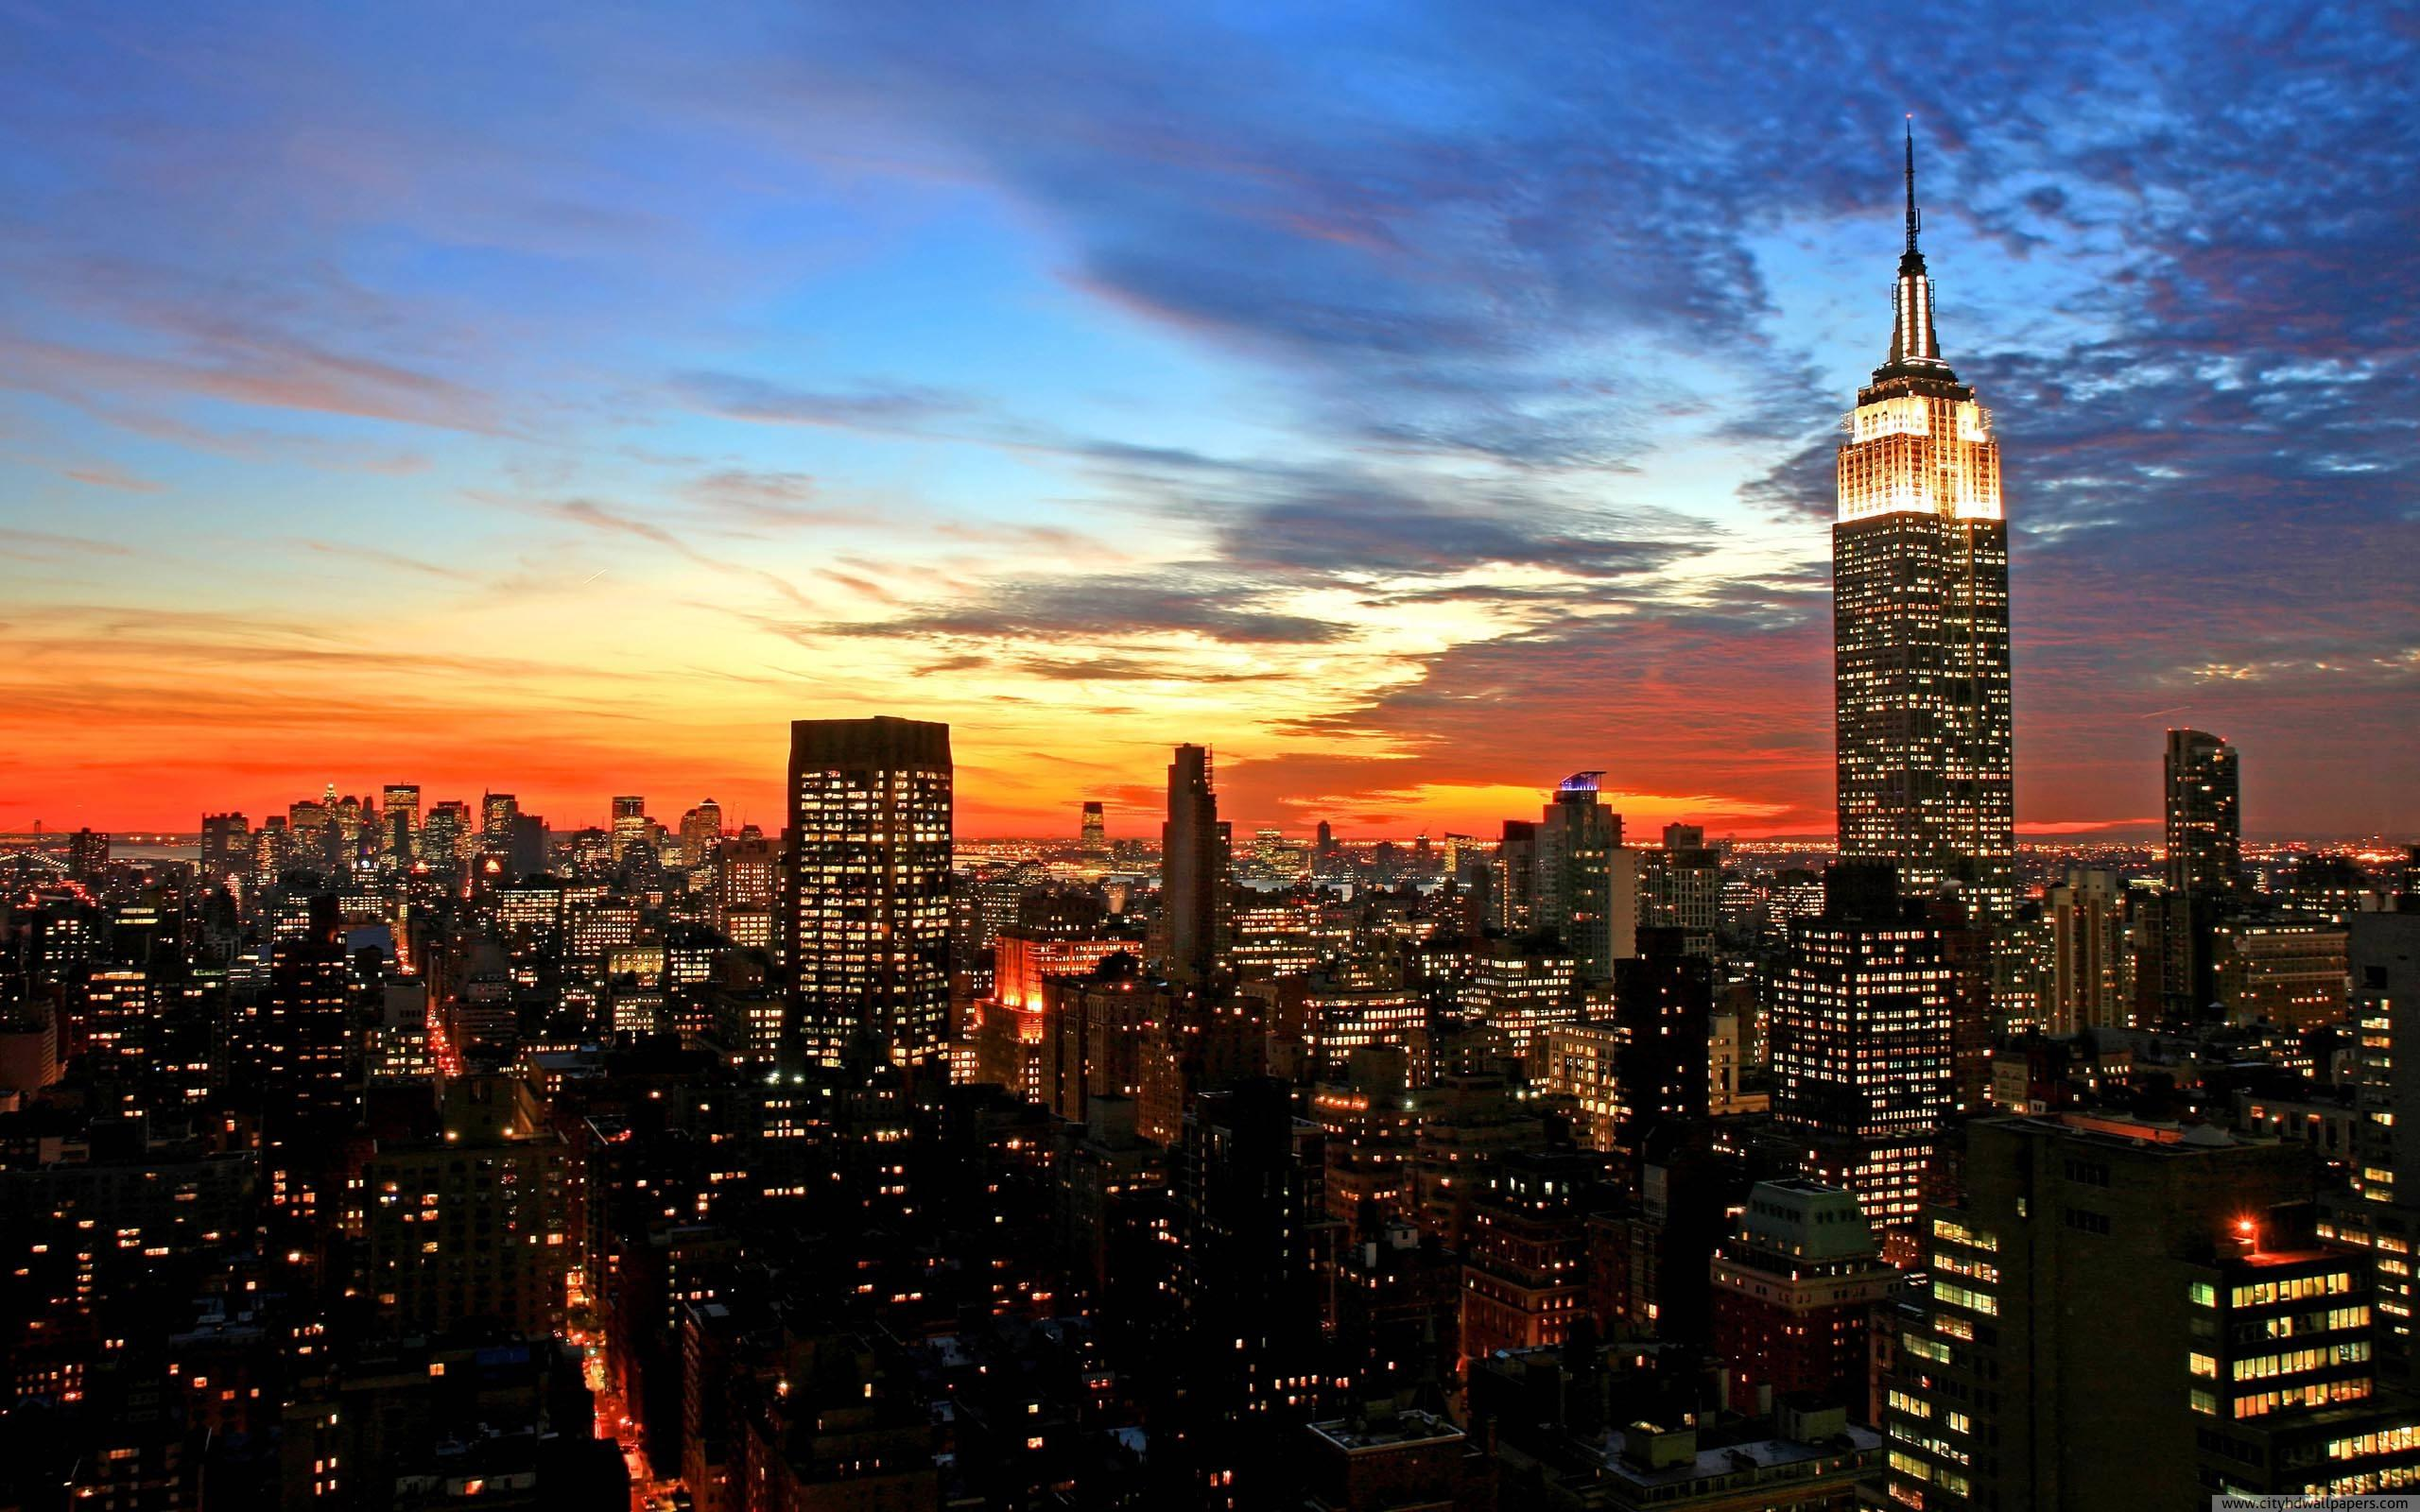 of new york in new york usa city hd wallpaper more about new york 2560x1600